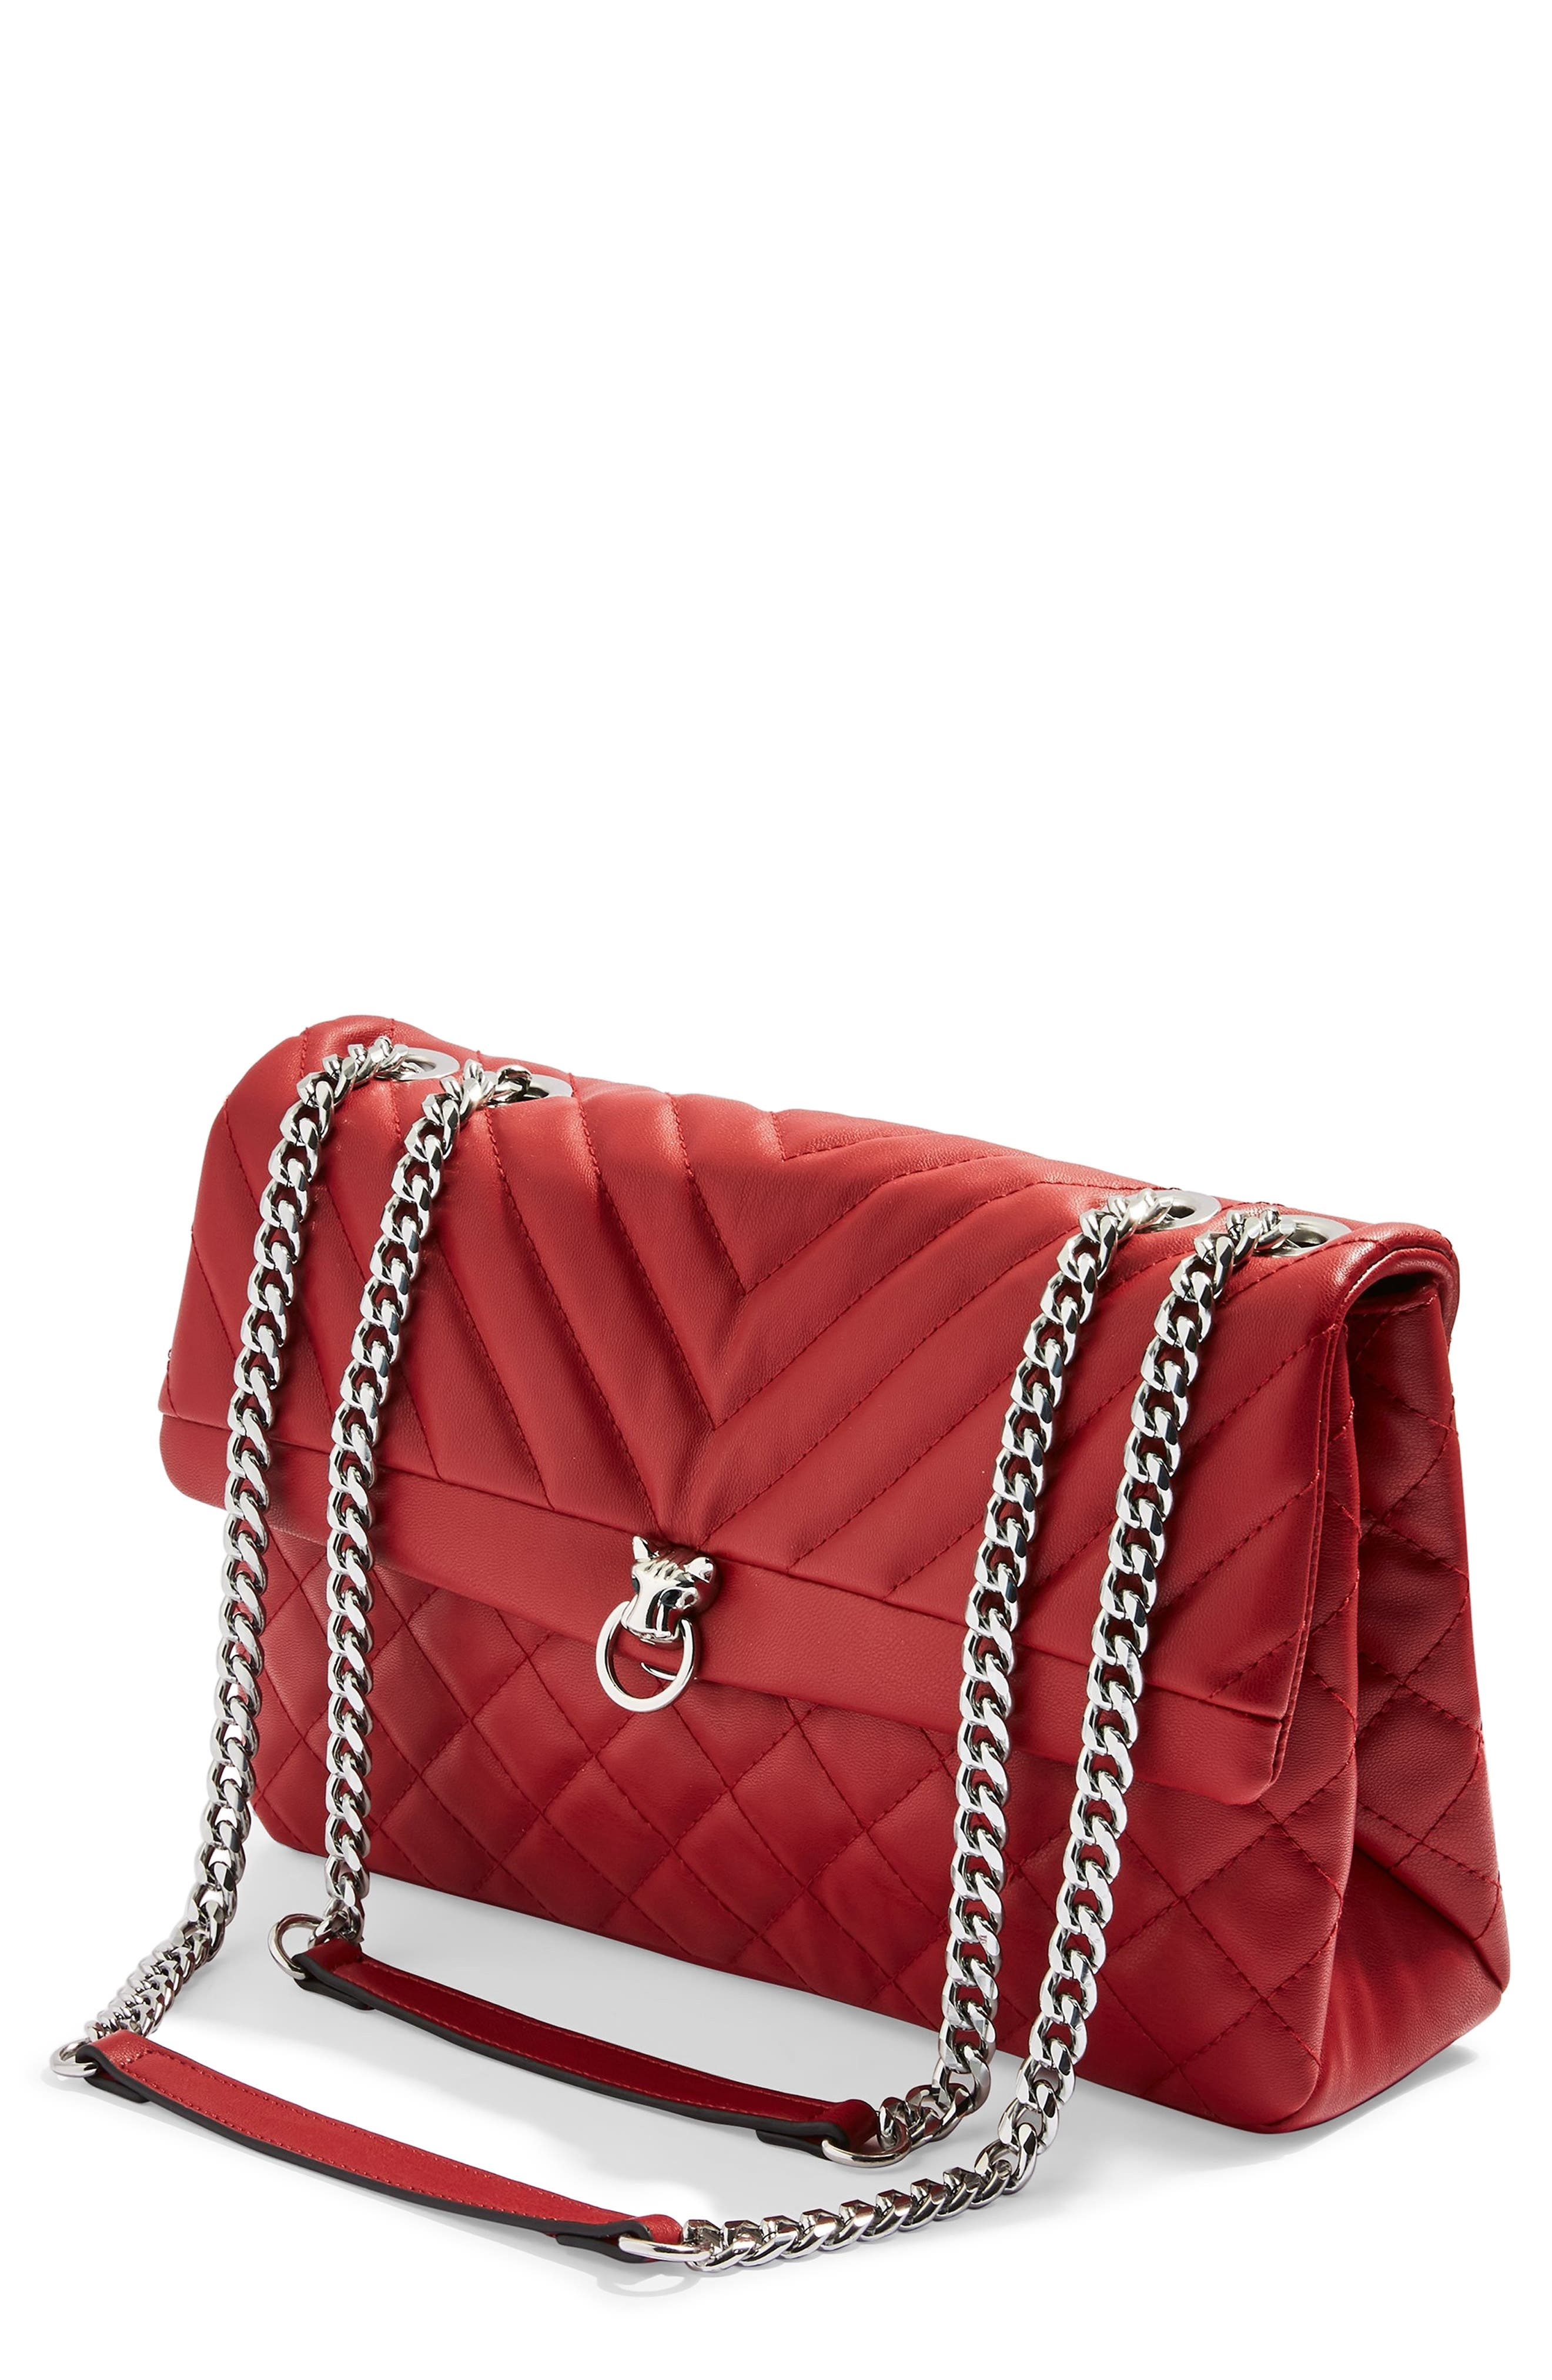 Panther Quilted Faux Leather Shoulder Bag,                         Main,                         color, RED MULTI